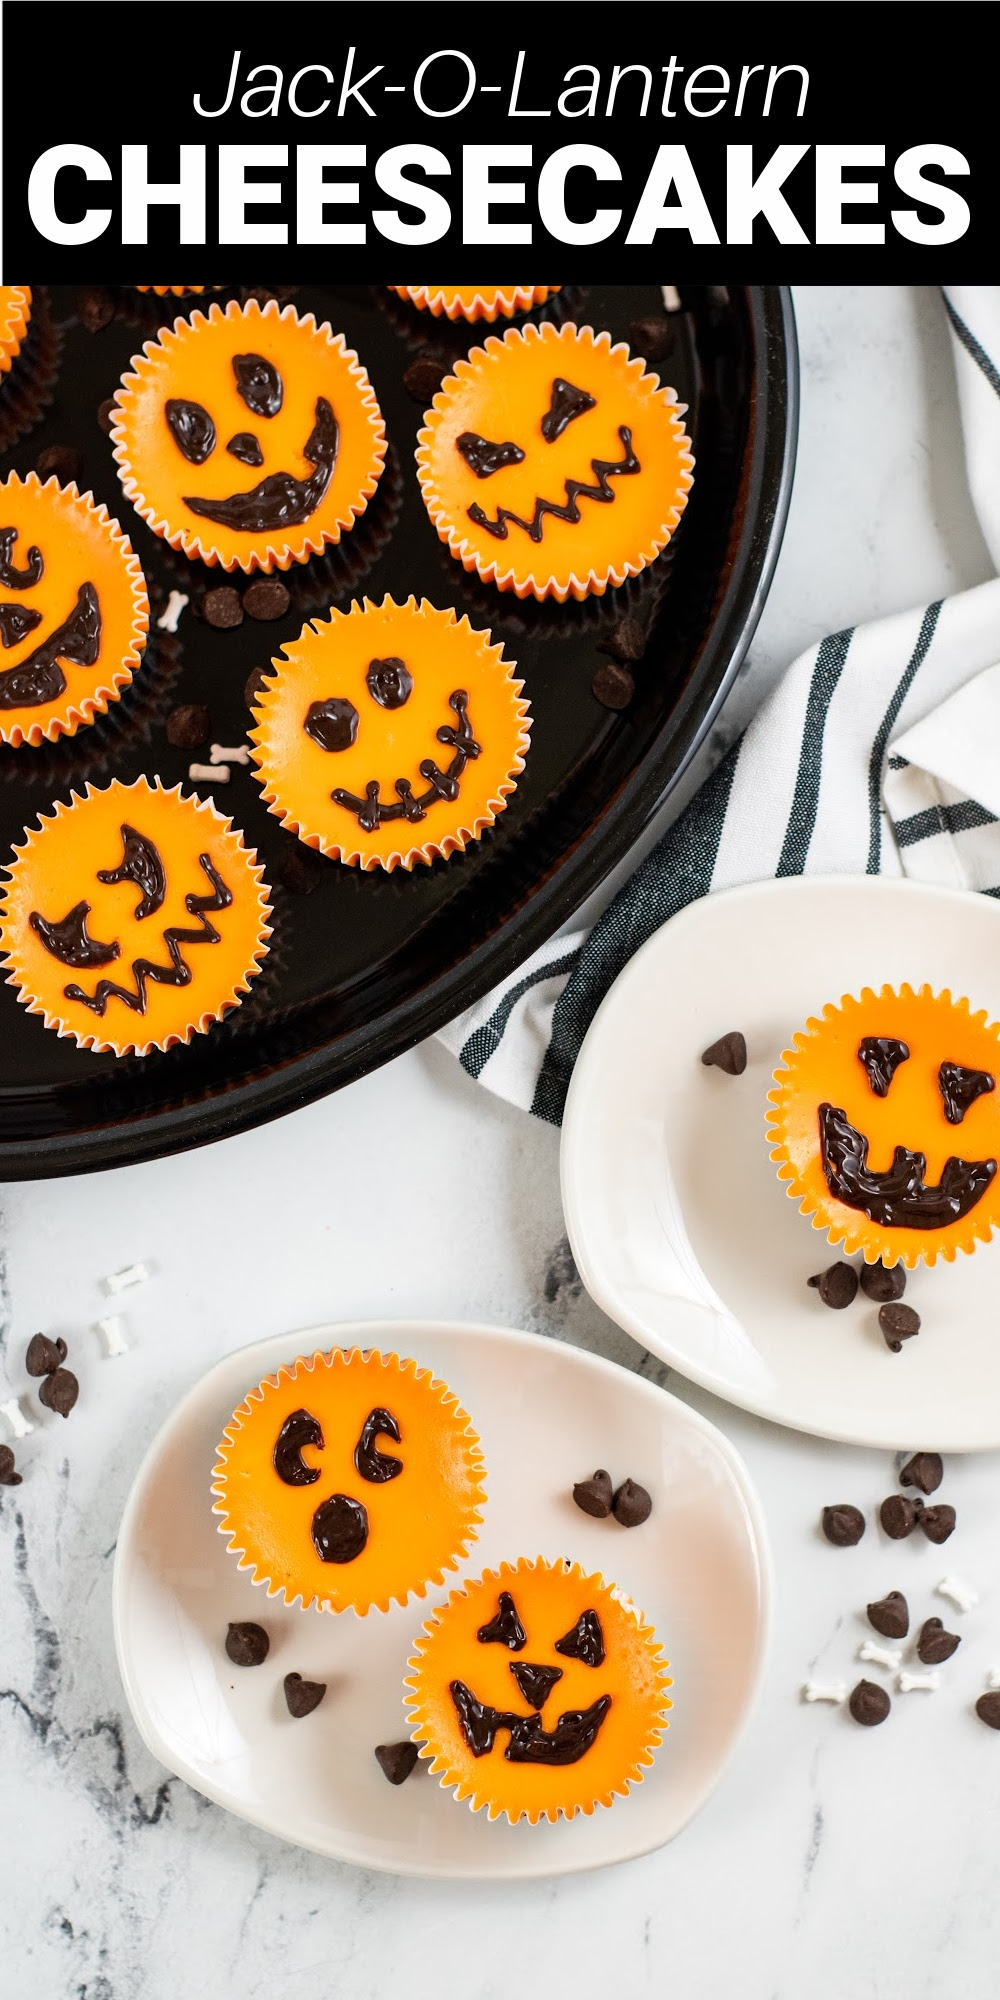 Mini Jack-o-lantern cheesecakes are such a fun and sweet treat for Halloween. With a graham cracker crust and a creamy center, there is no way that you're going to be able to stop at just one!